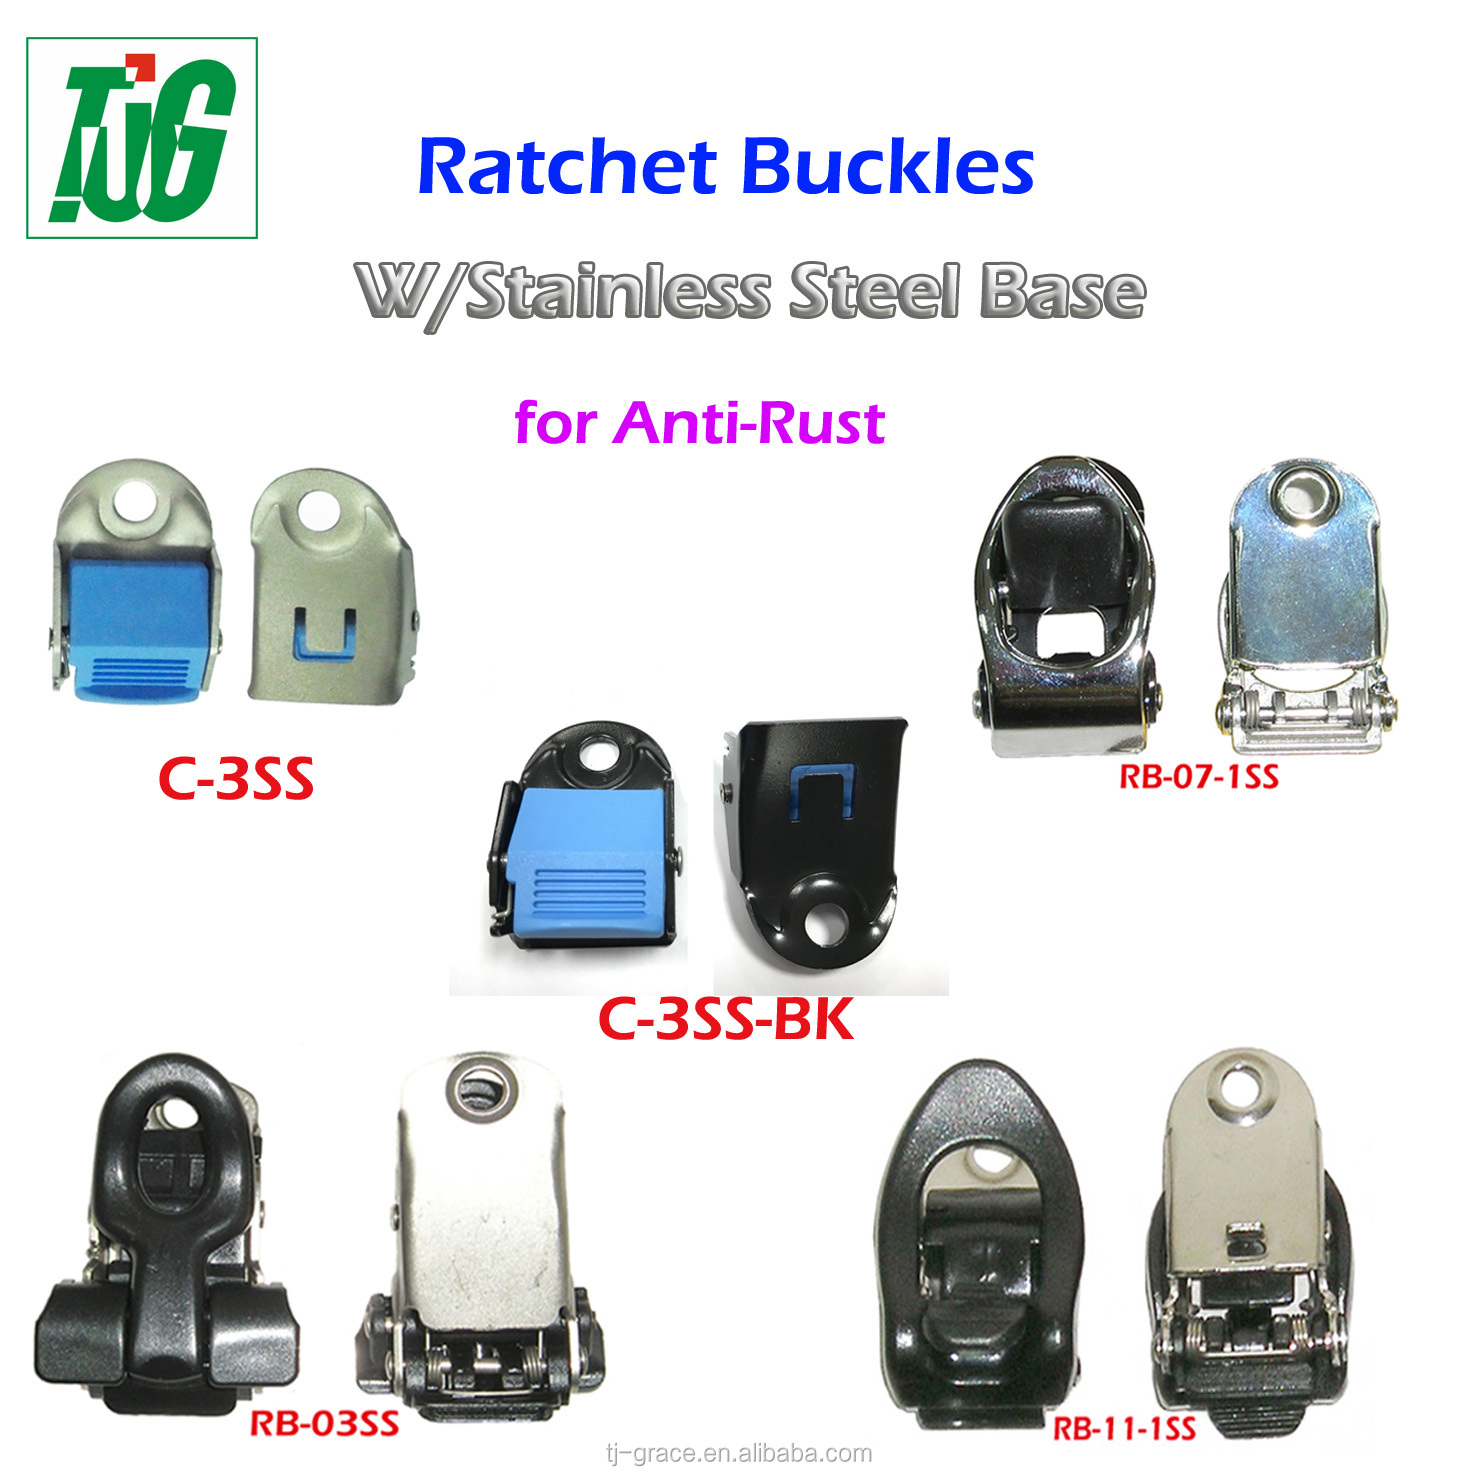 Stainless steel base adjustable Ratchet Buckle